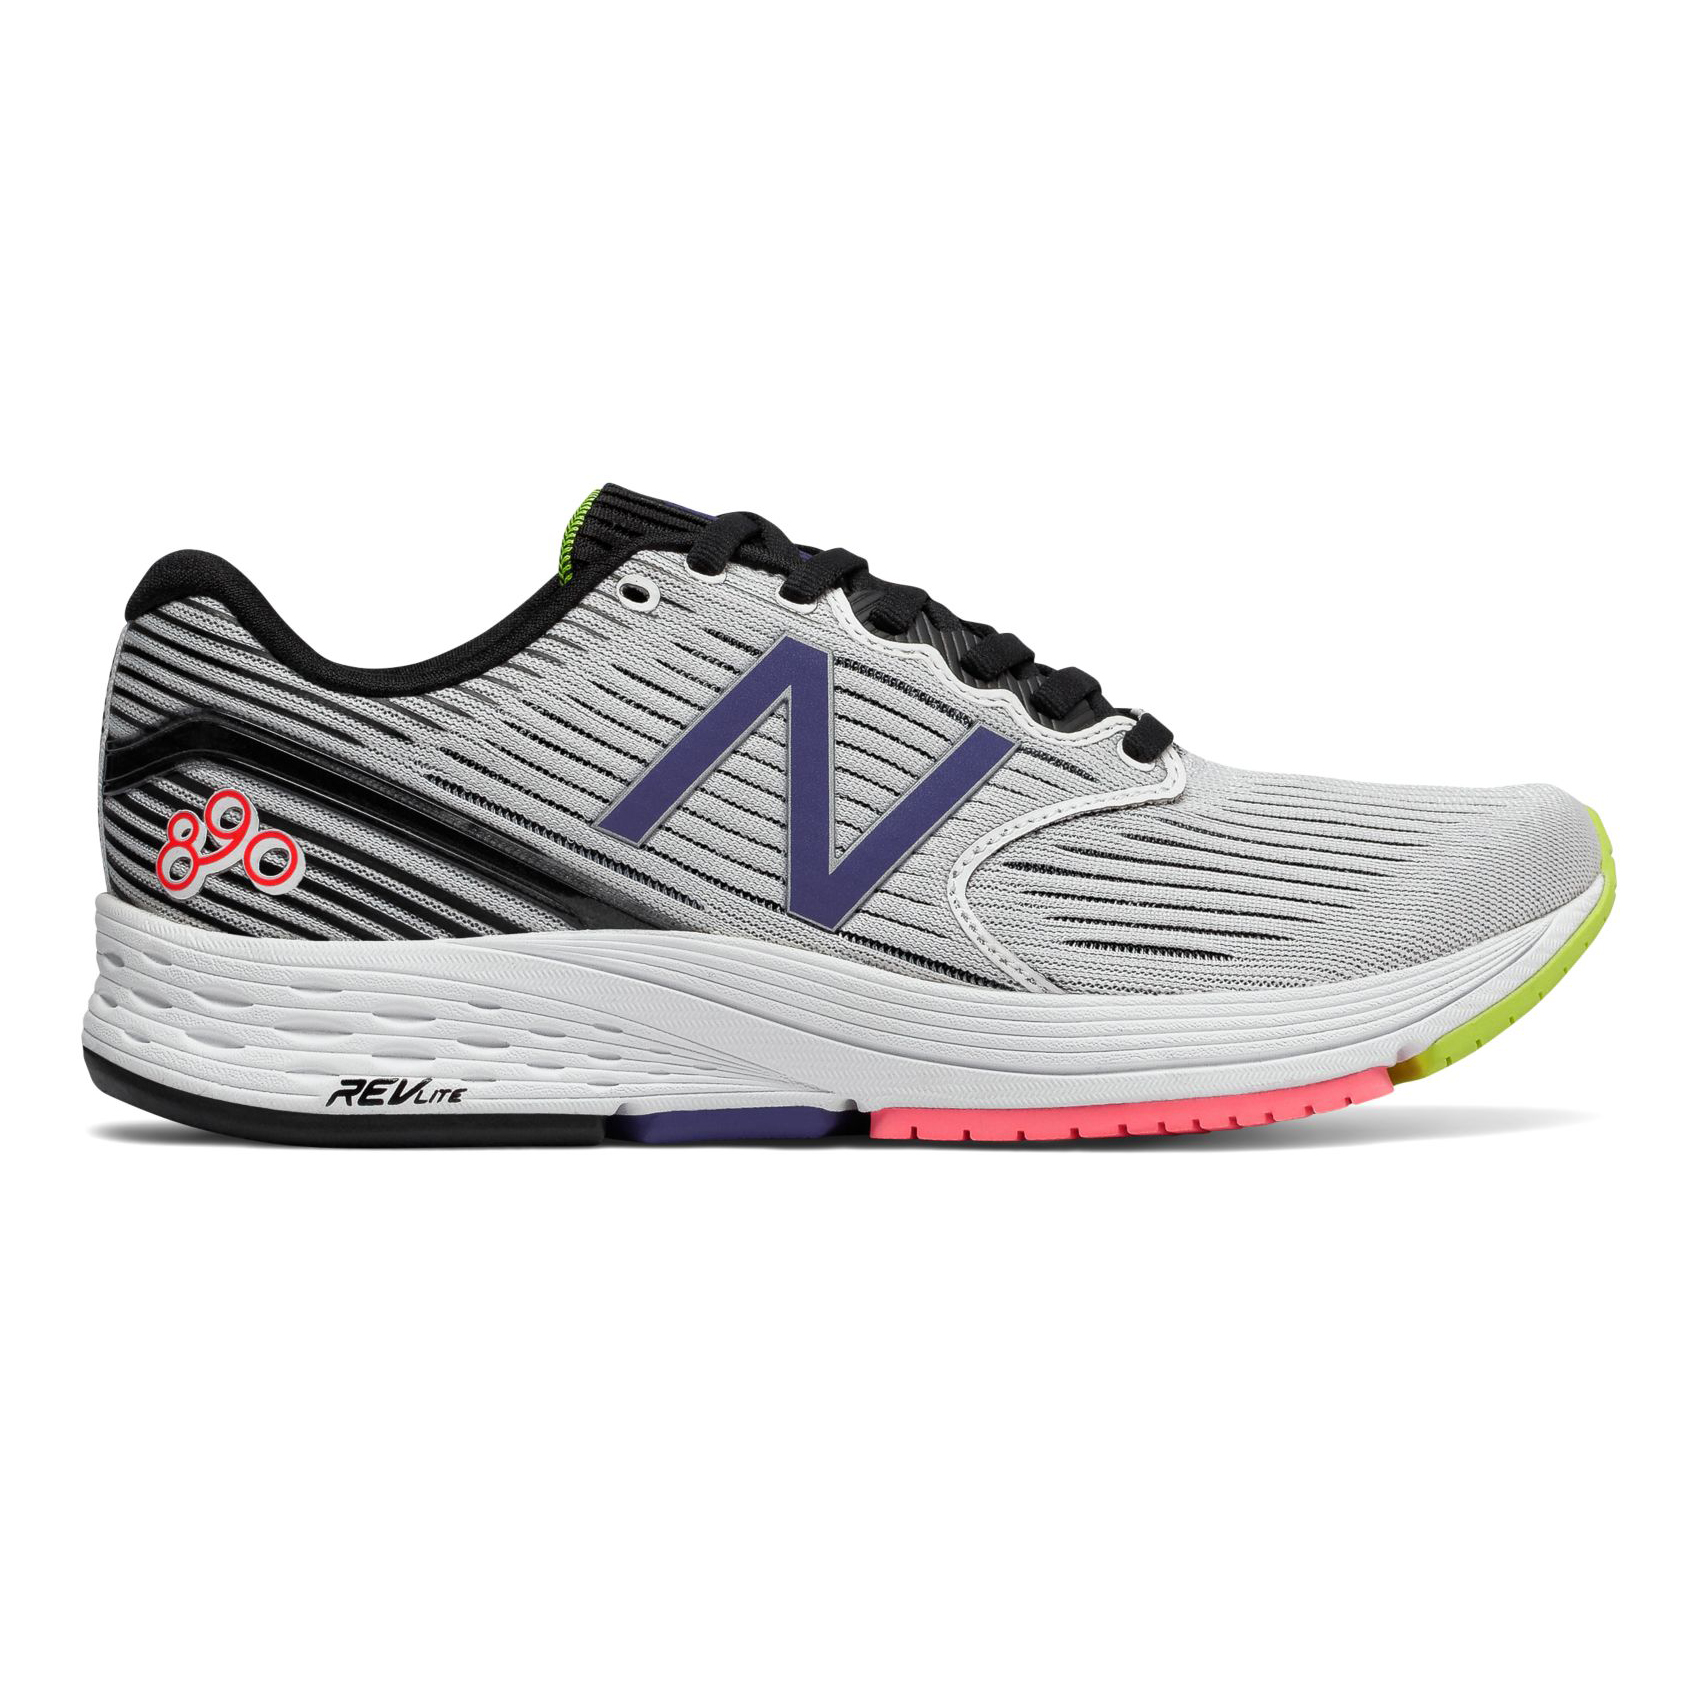 Details about New Balance Women's 890v6 NBx White/Black/Blue/Coral